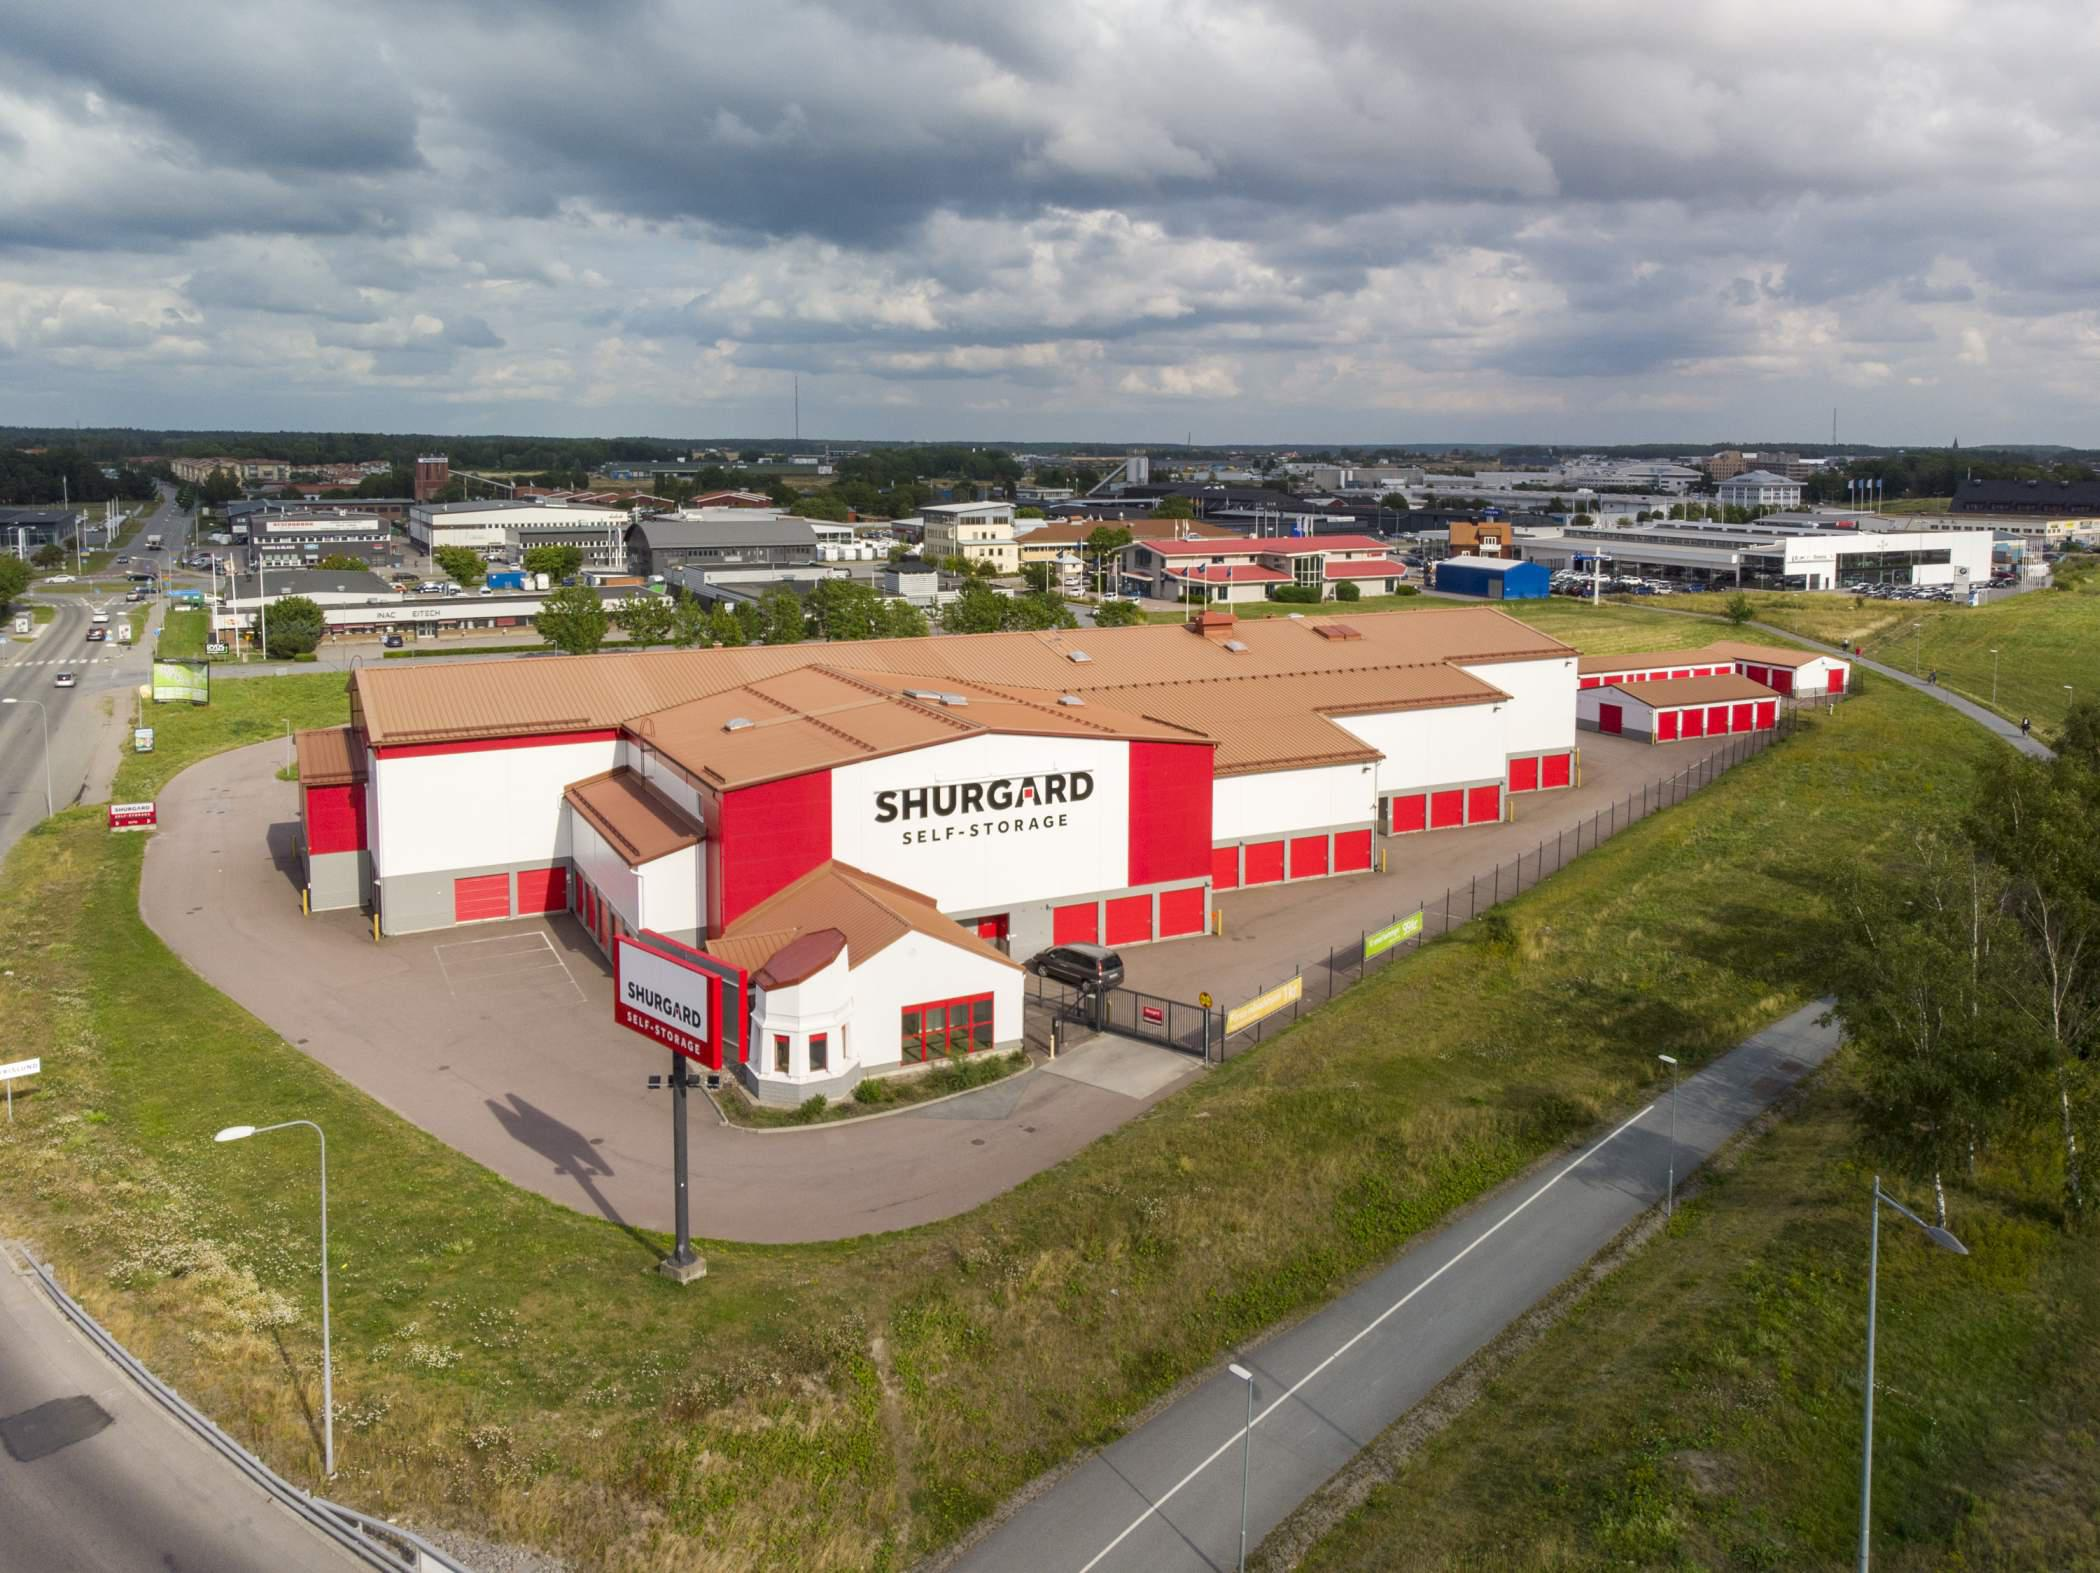 Shurgard Self-Storage Uppsala